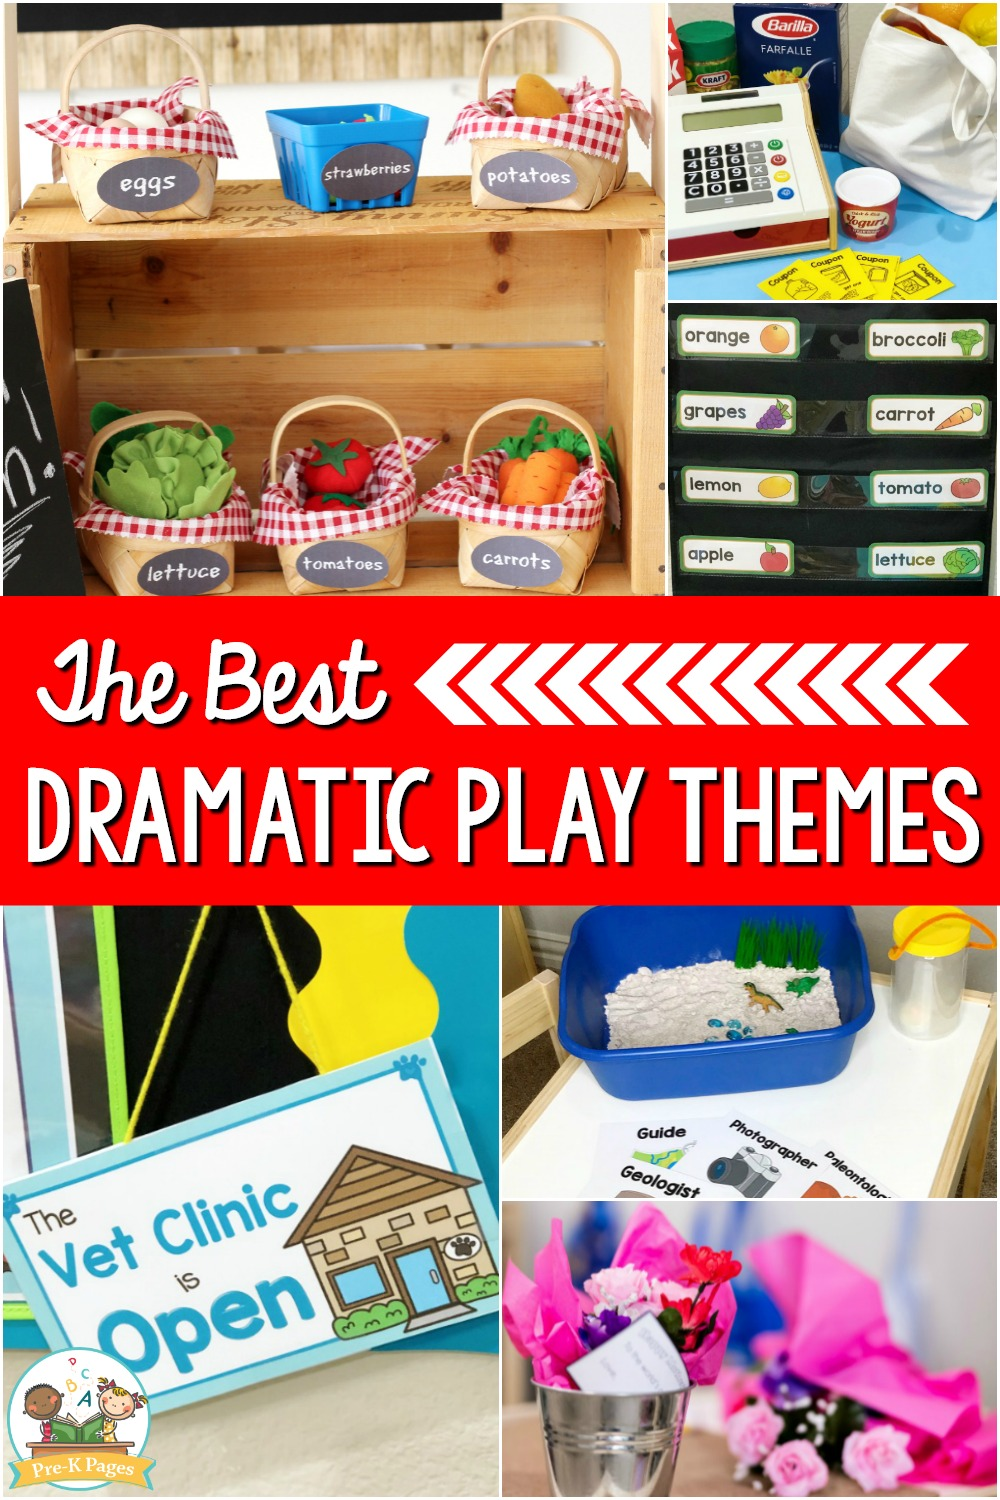 The Best Dramatic Play Themes